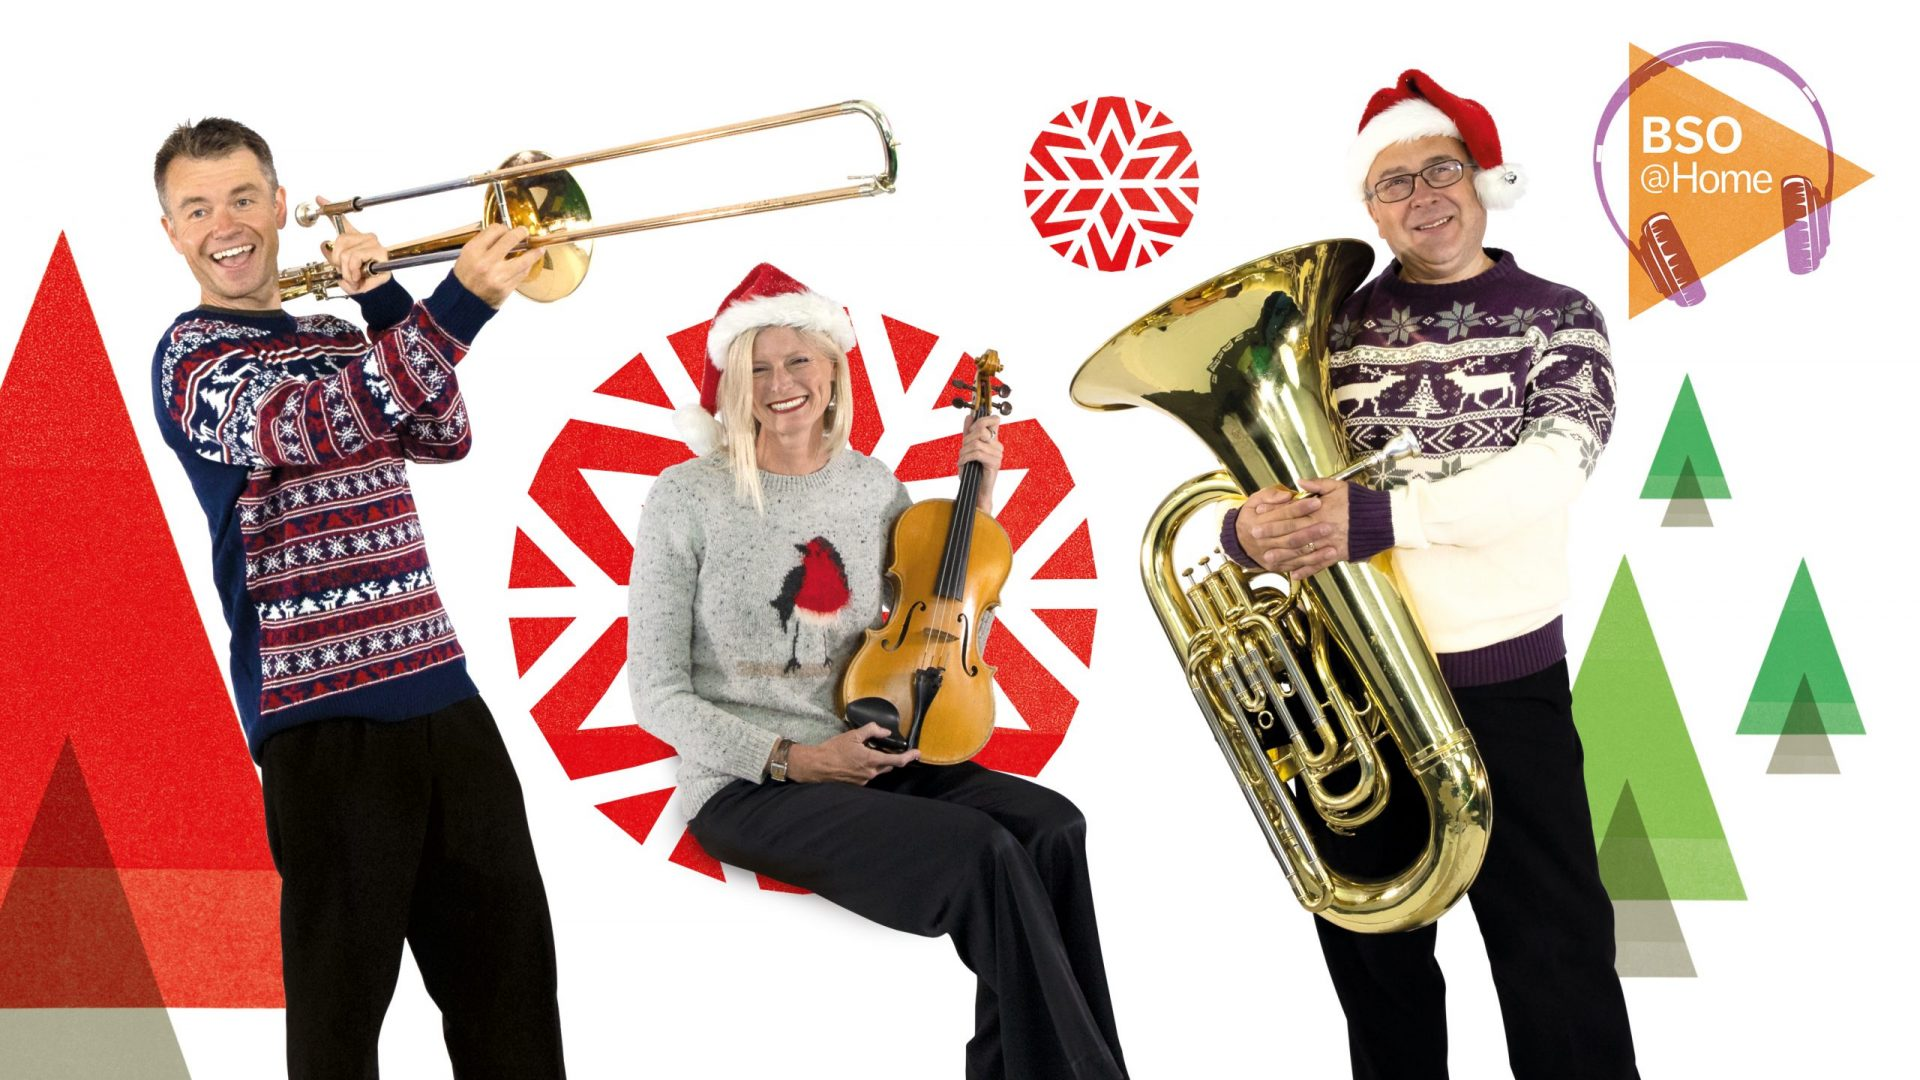 BSO Christmas, musicians wearing Christmas jumpers.